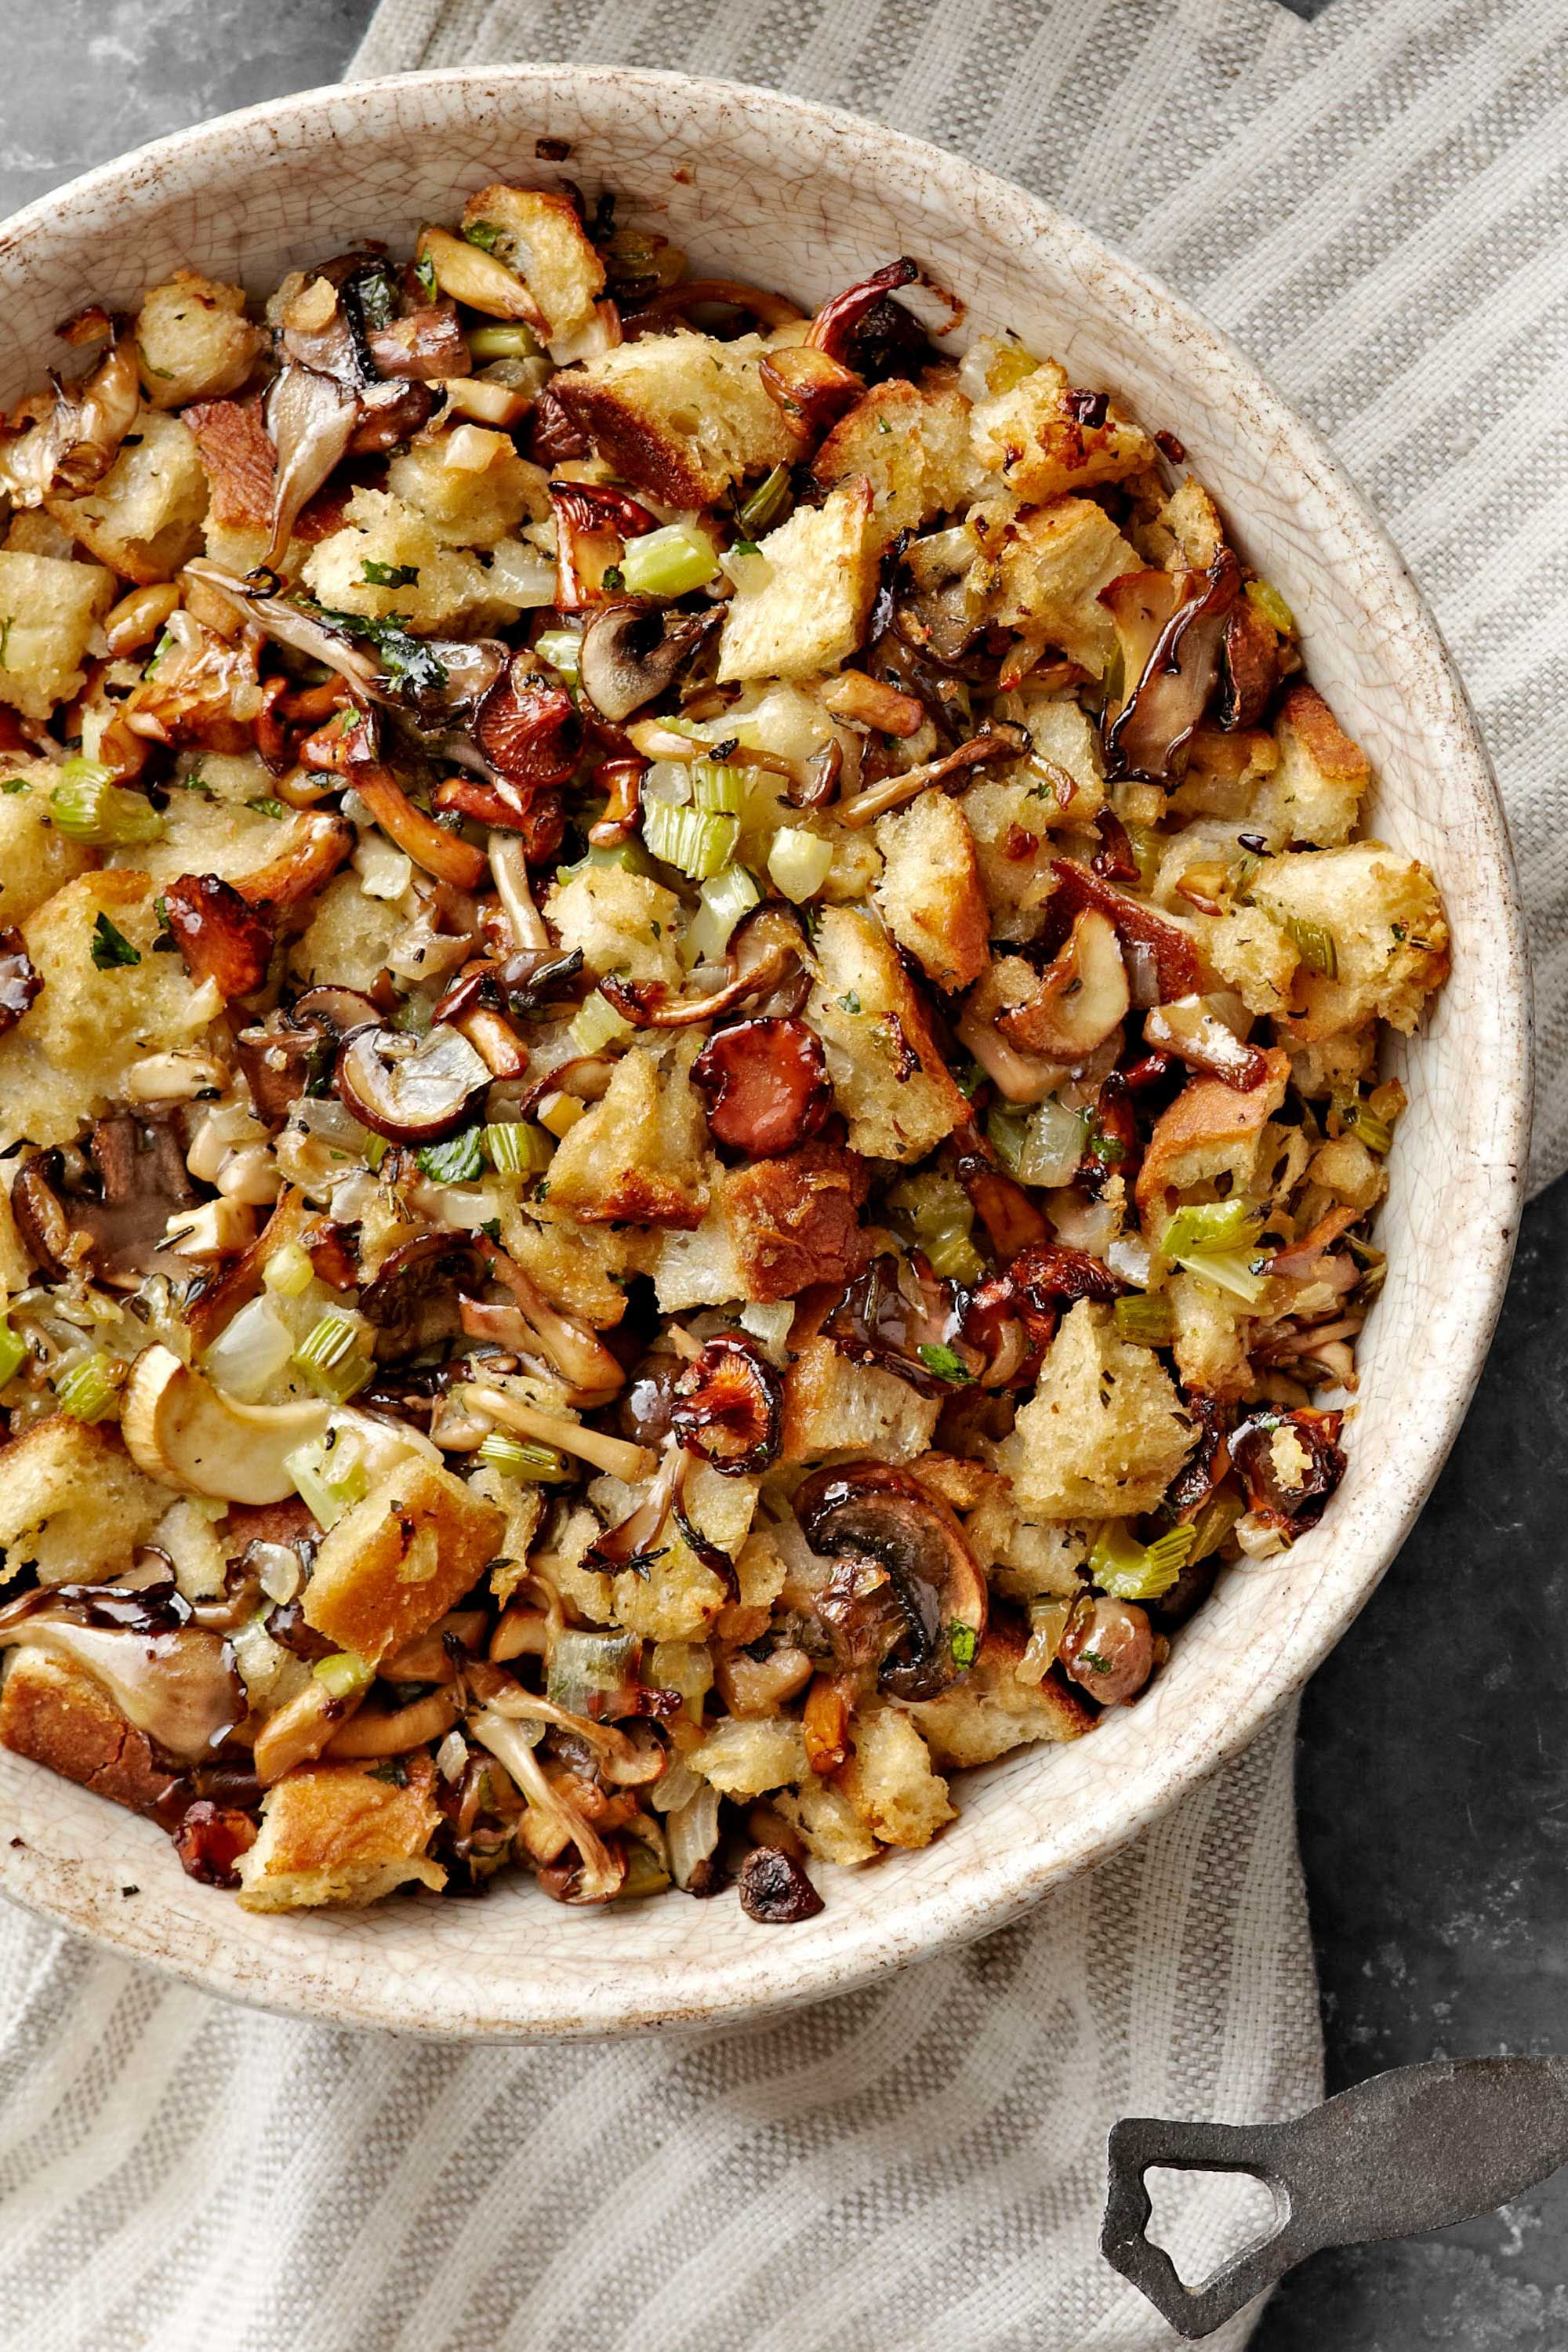 35 Best Stuffing Recipes   Easy Thanksgiving Stuffing Ideas sourdough and mushroom stuffing recipe